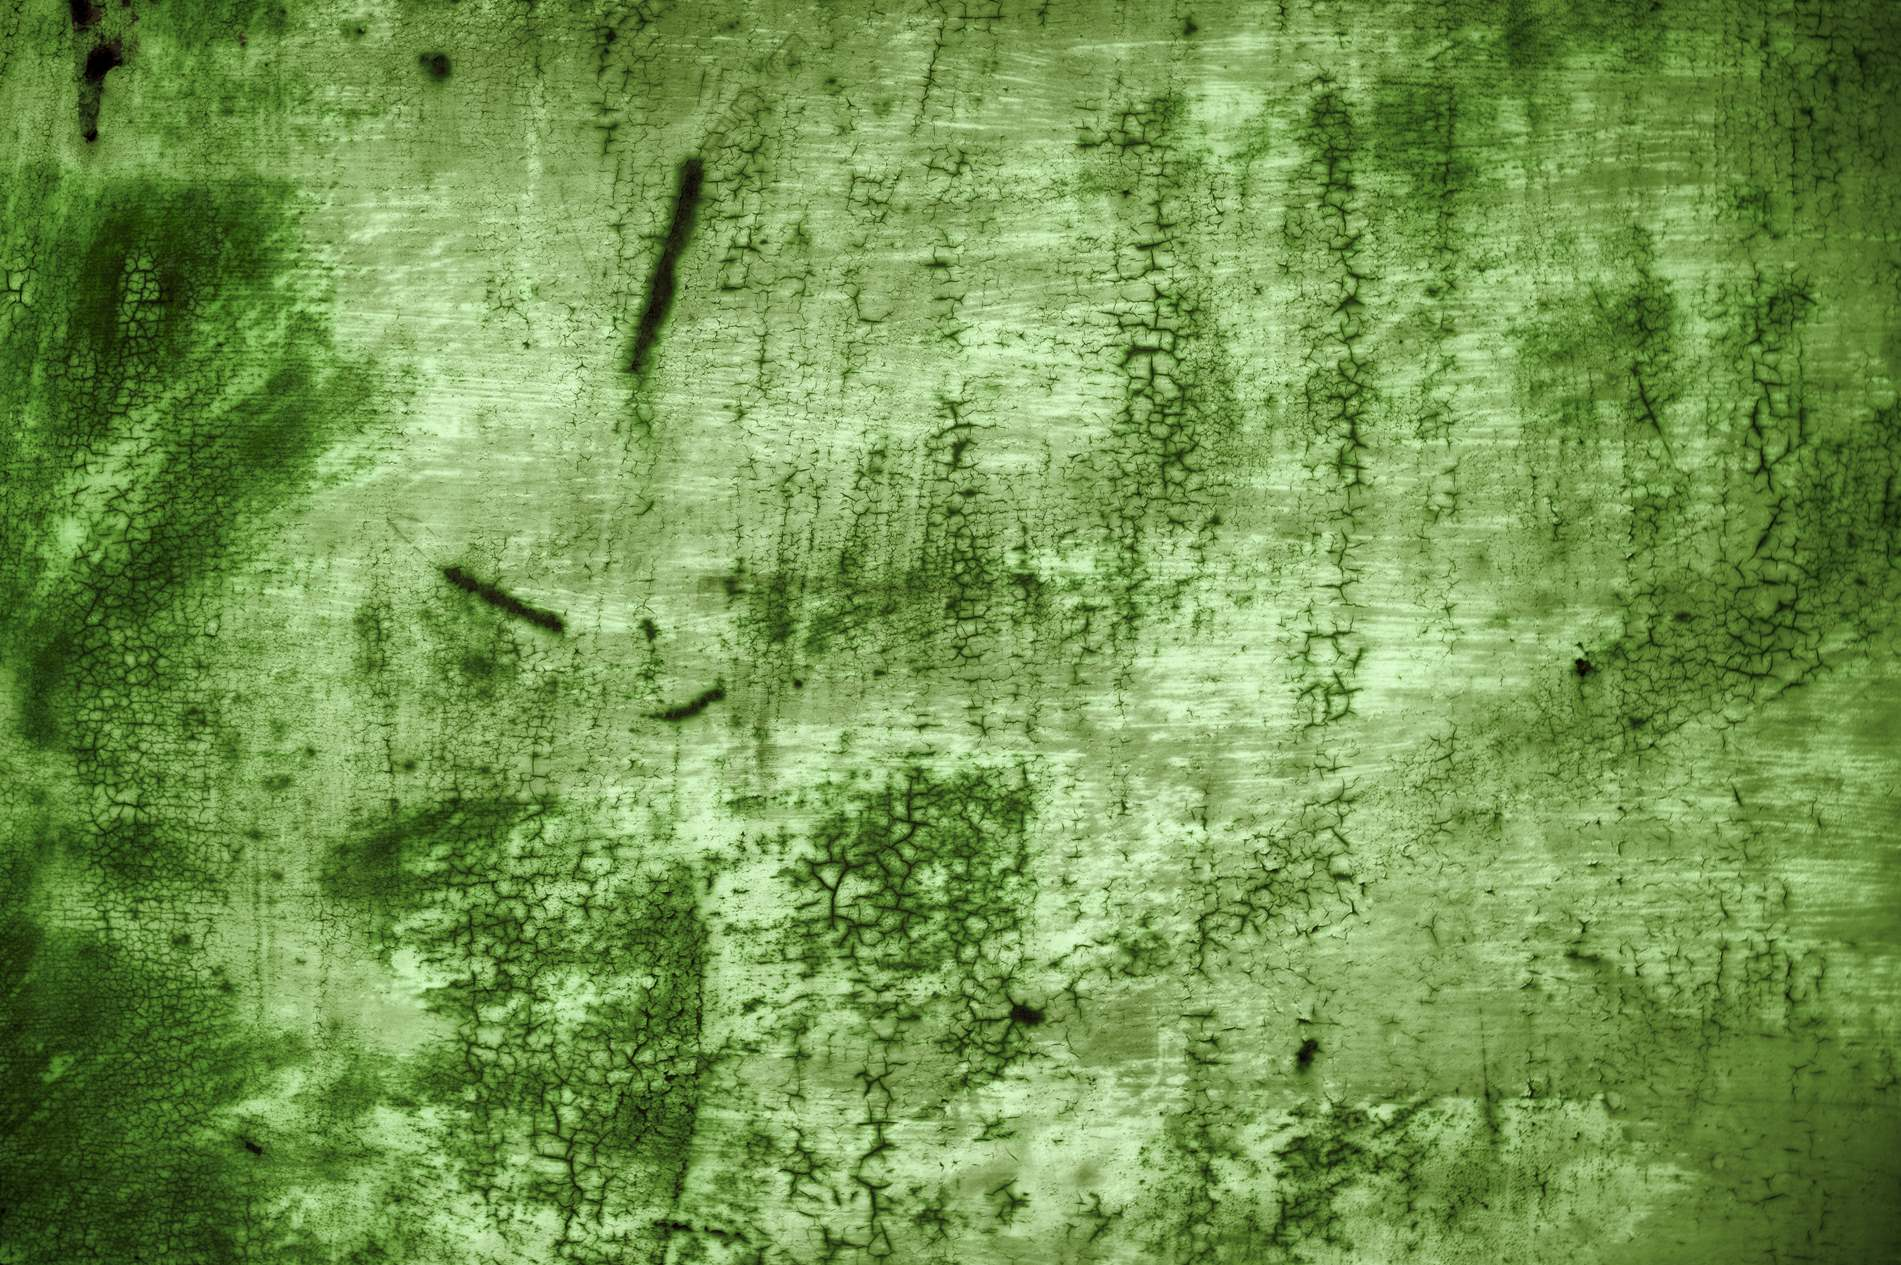 wallpaper surface scratches green - photo #8